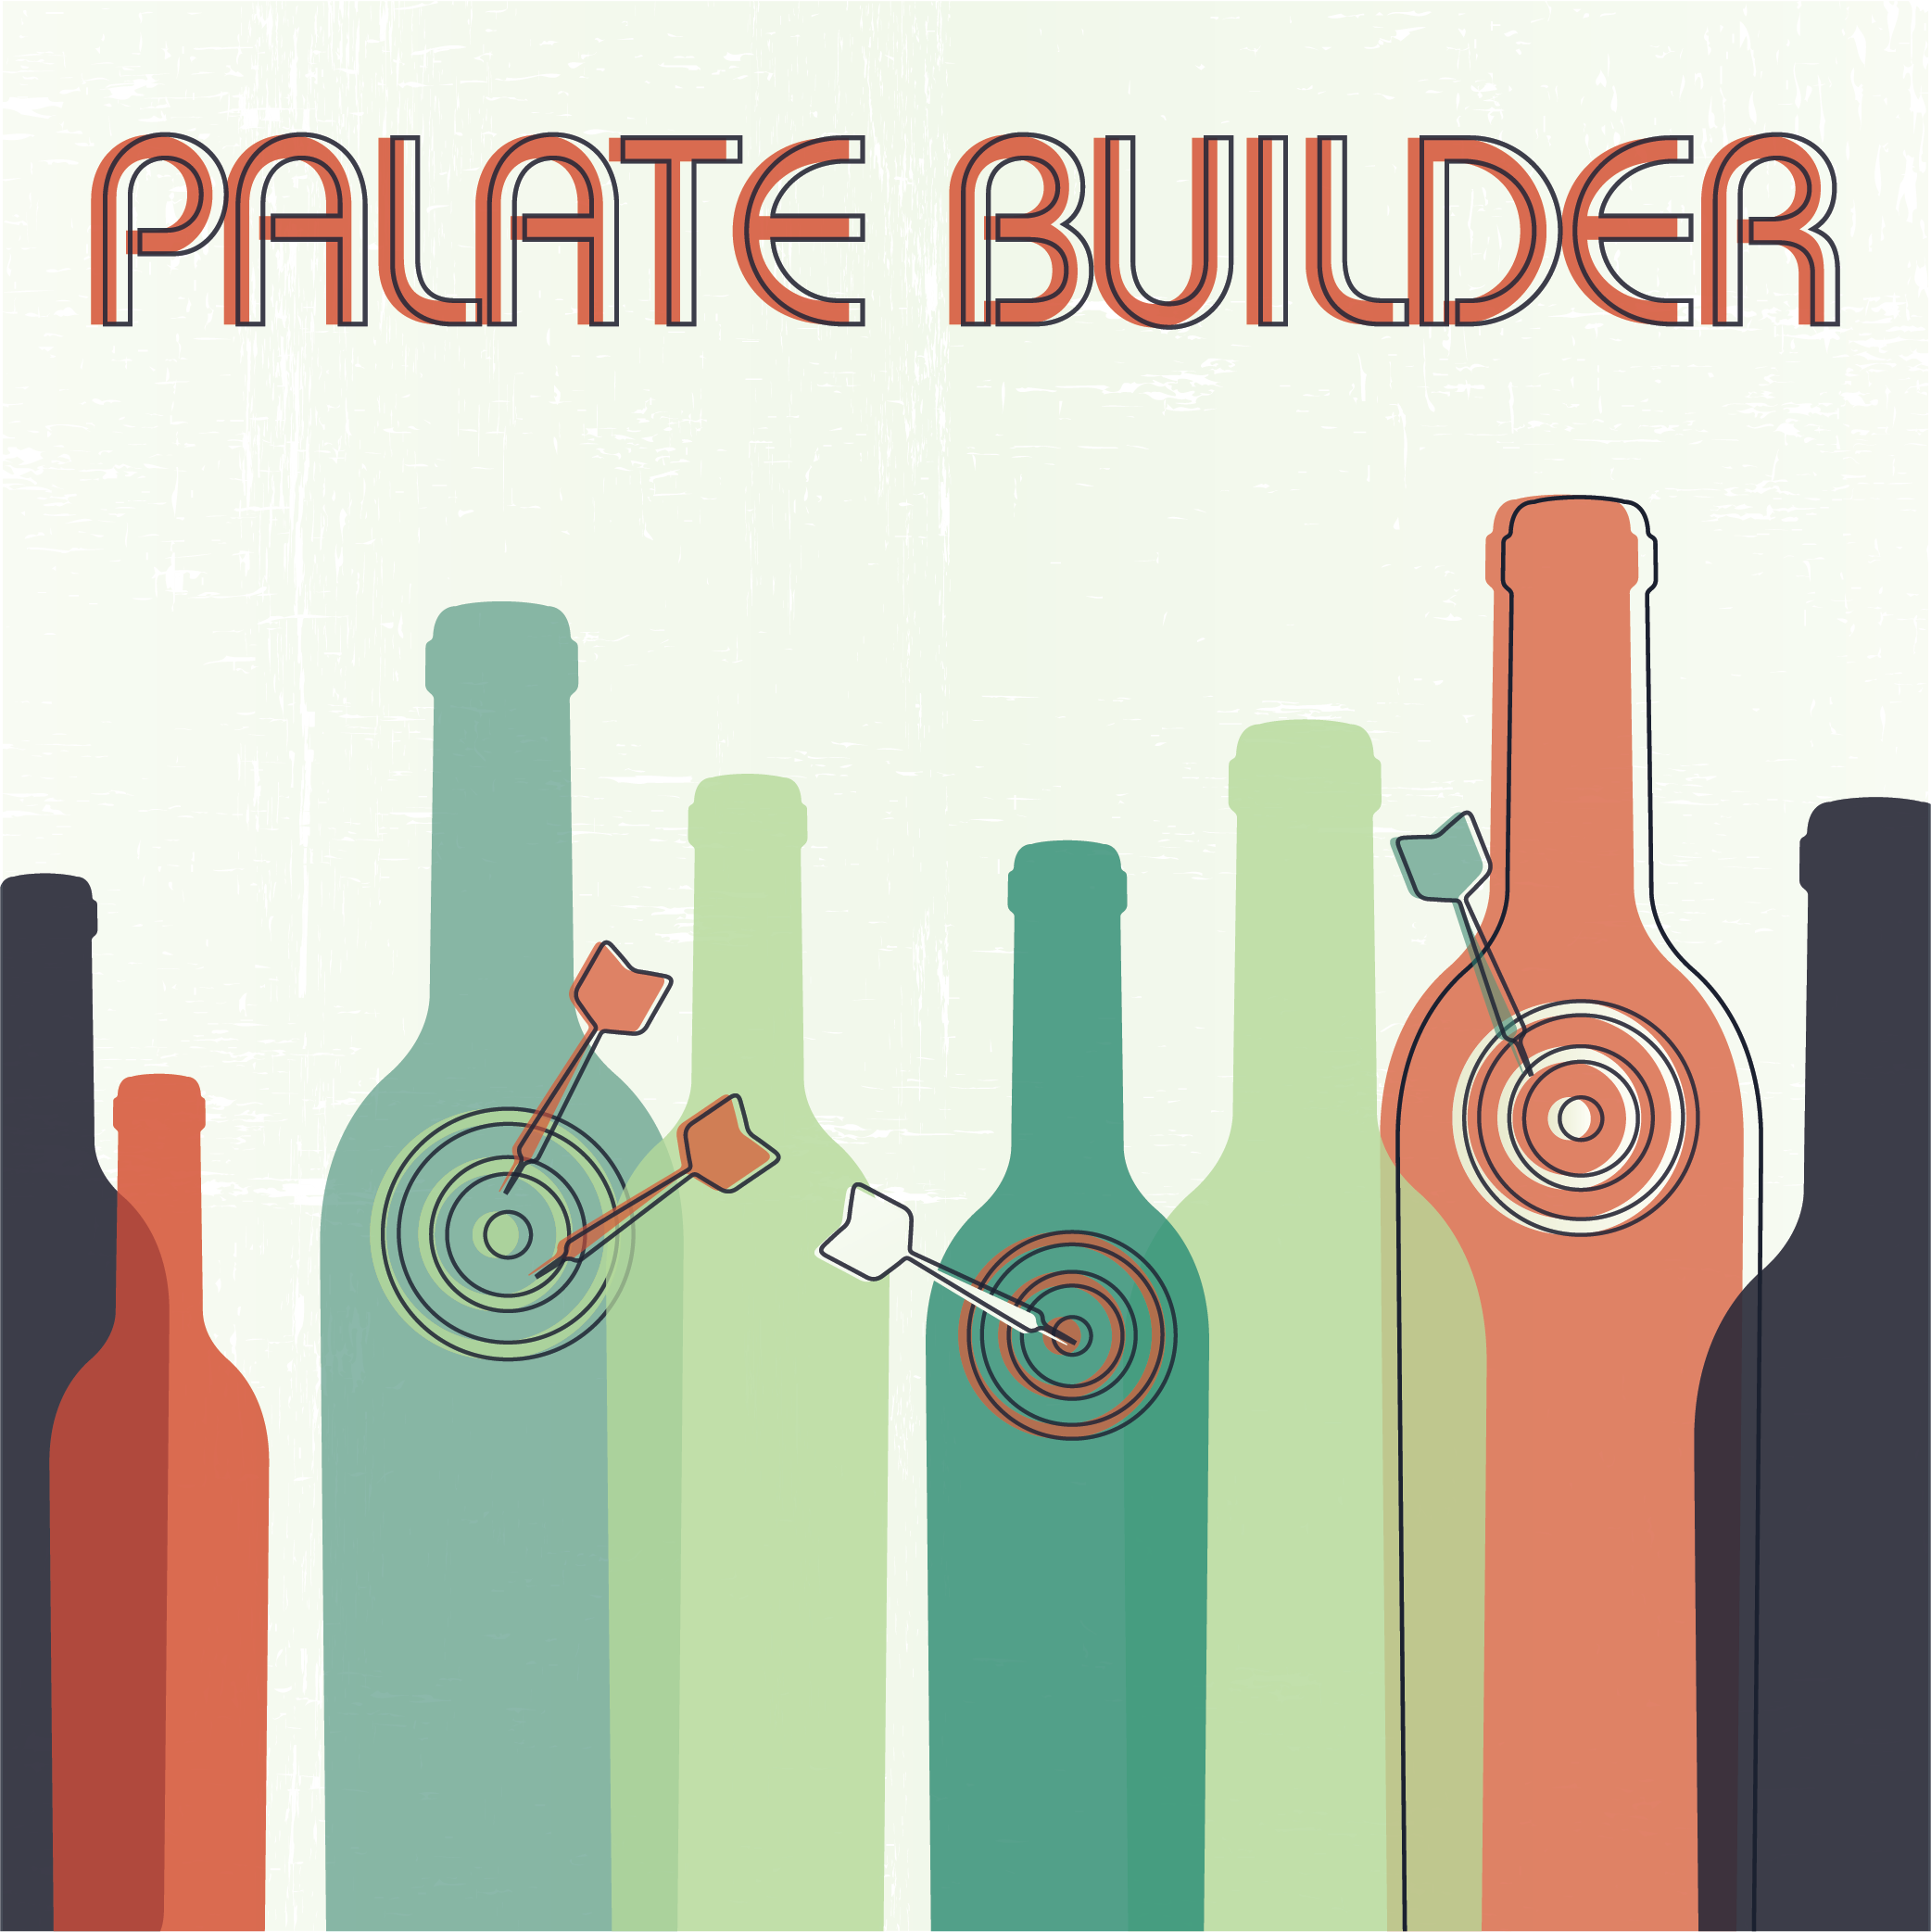 Palate Builder  Downtown Los Angeles  August 31, 2019 7:00 PM - 9:00 PM